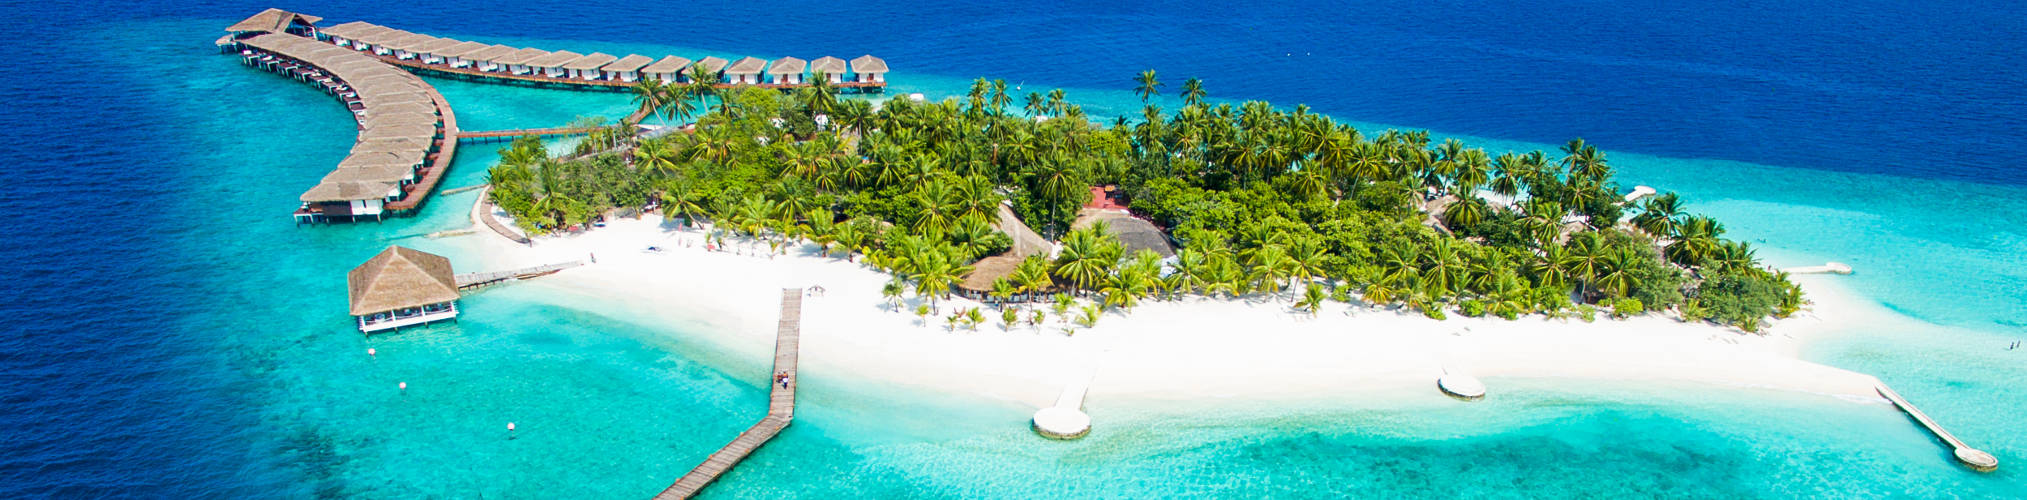 Vacanze top resort maldive